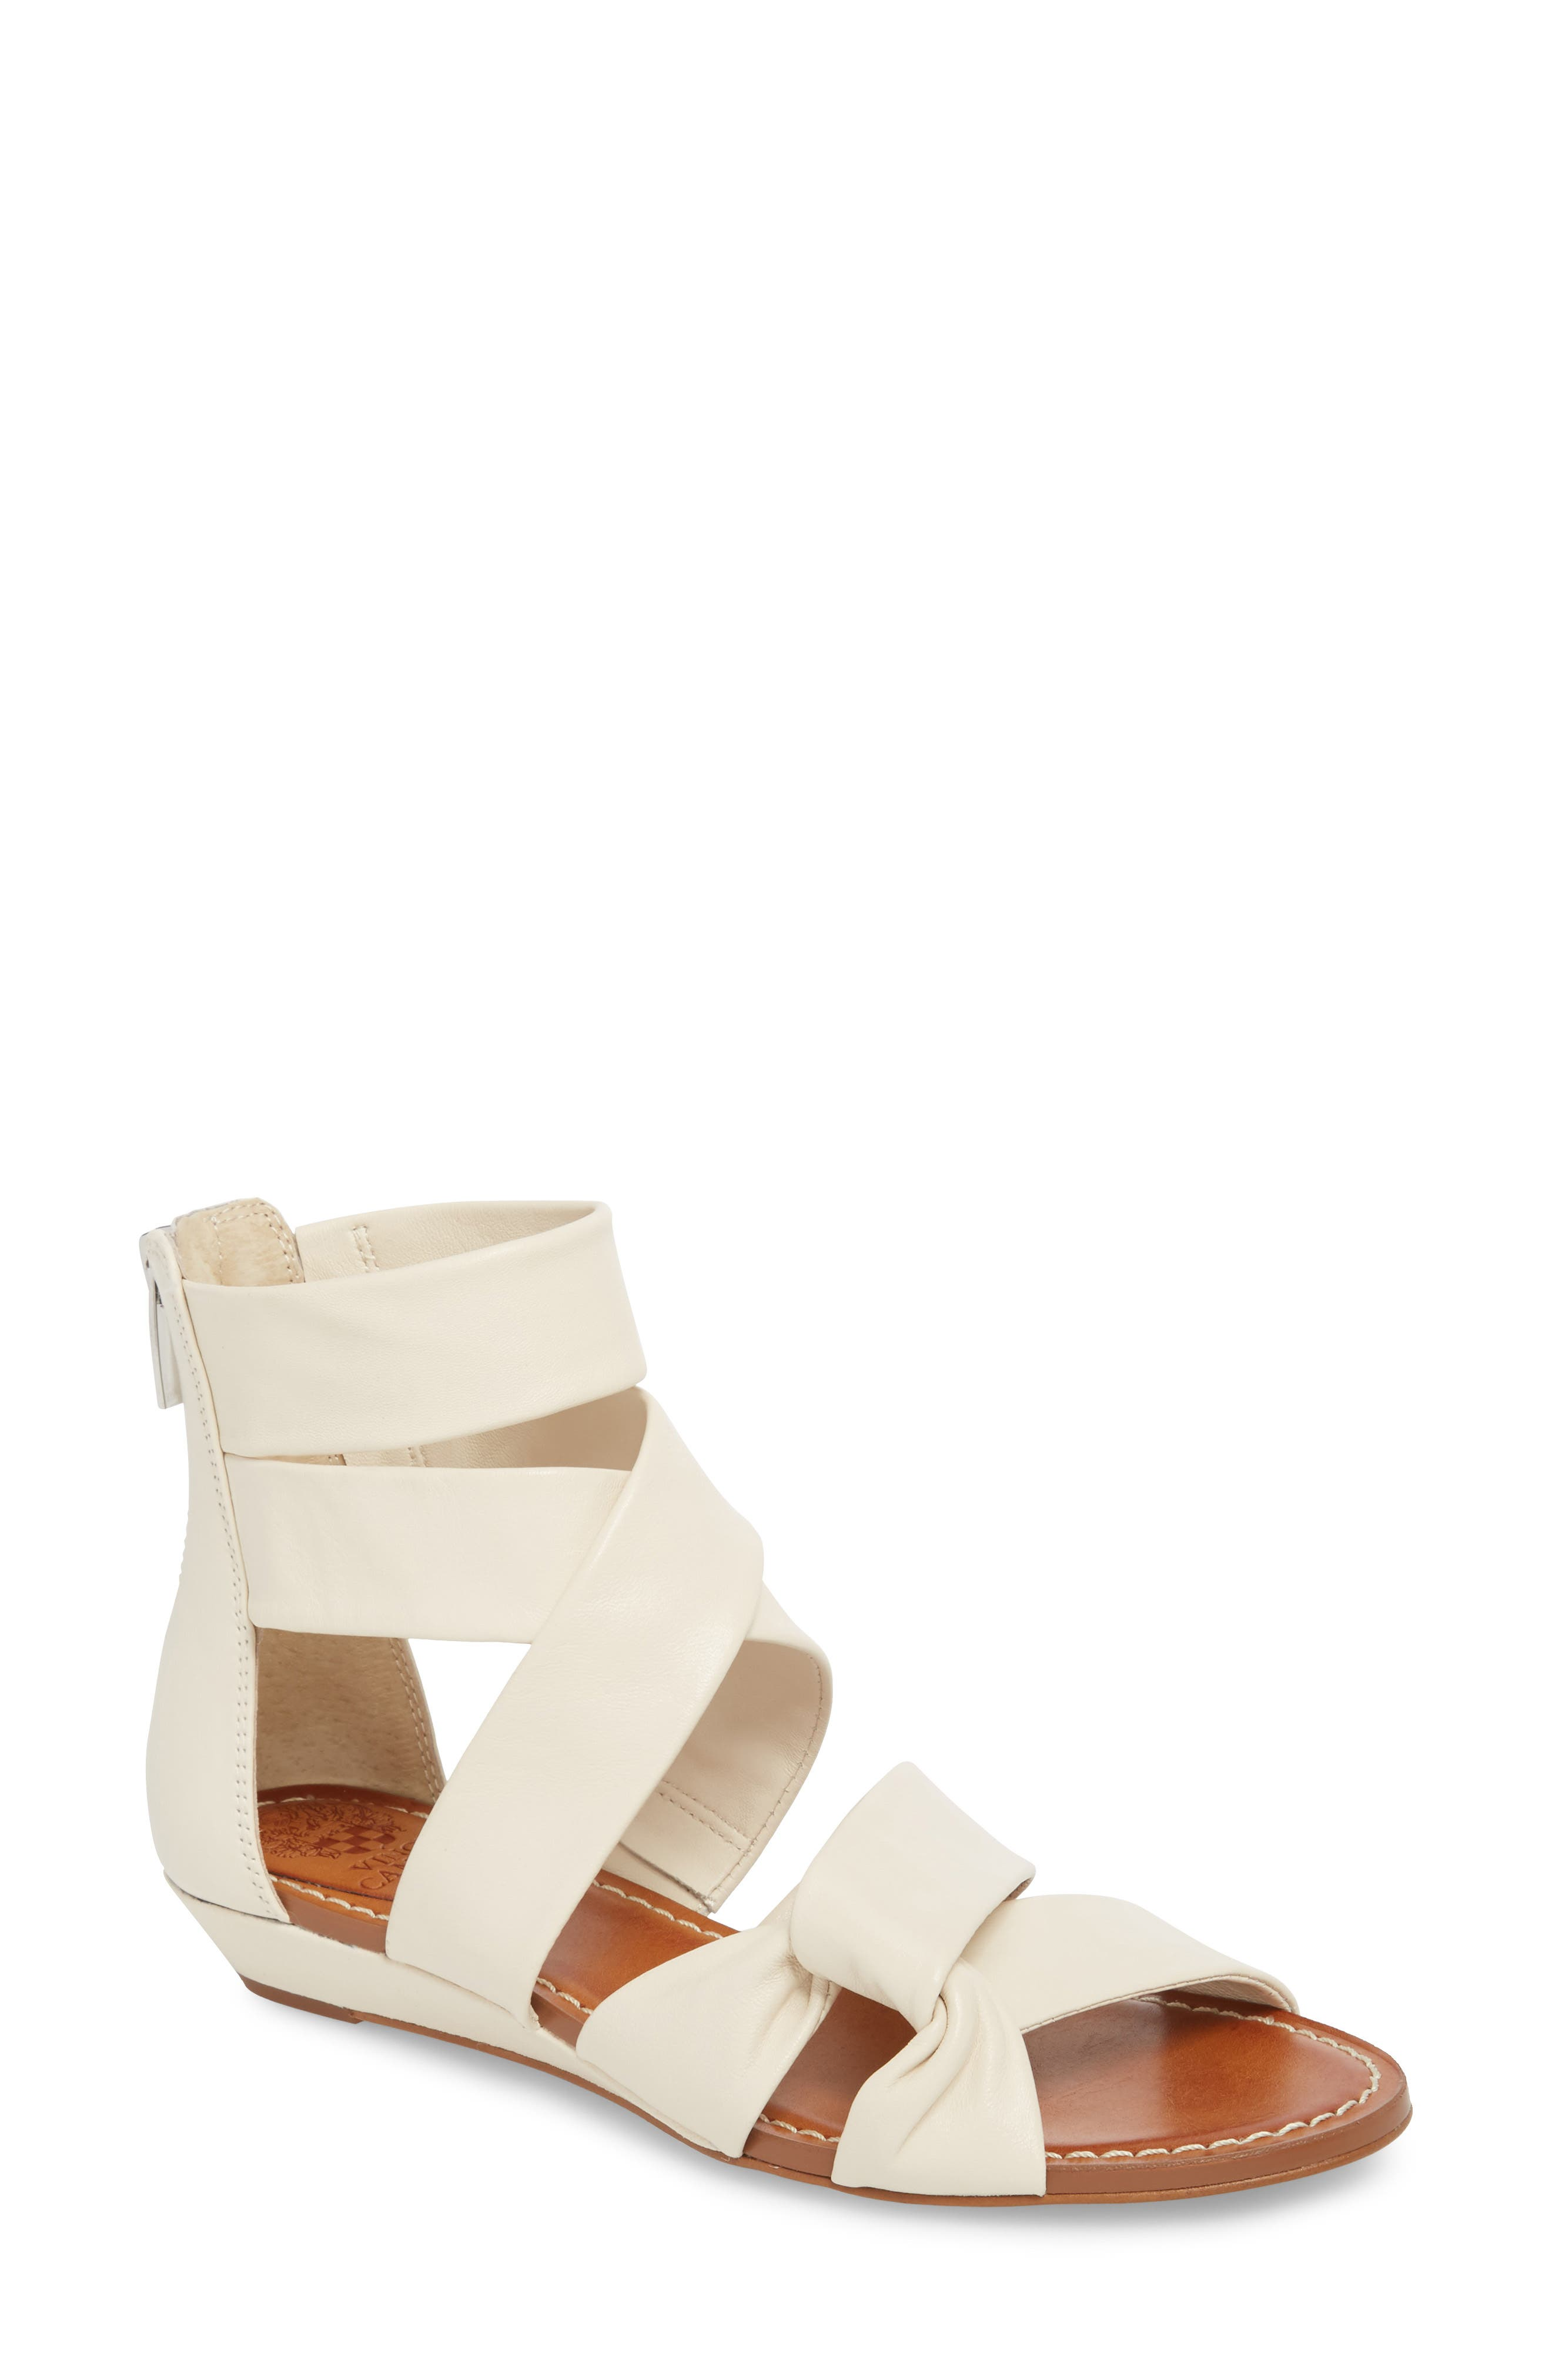 Seevina Low Wedge Sandal,                         Main,                         color, Vanilla Leather